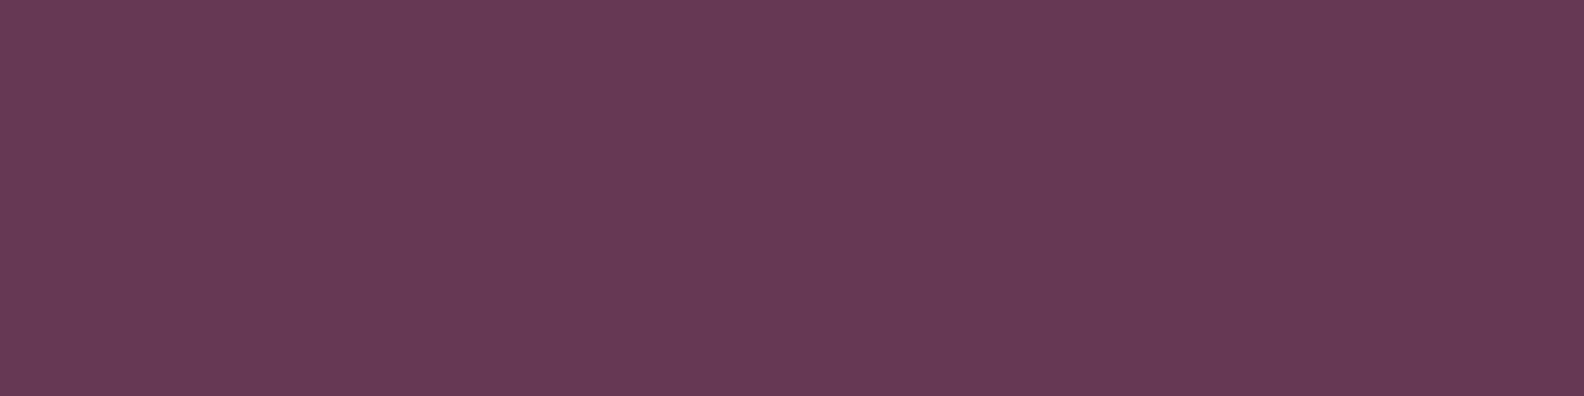 1584x396 Halaya Ube Solid Color Background